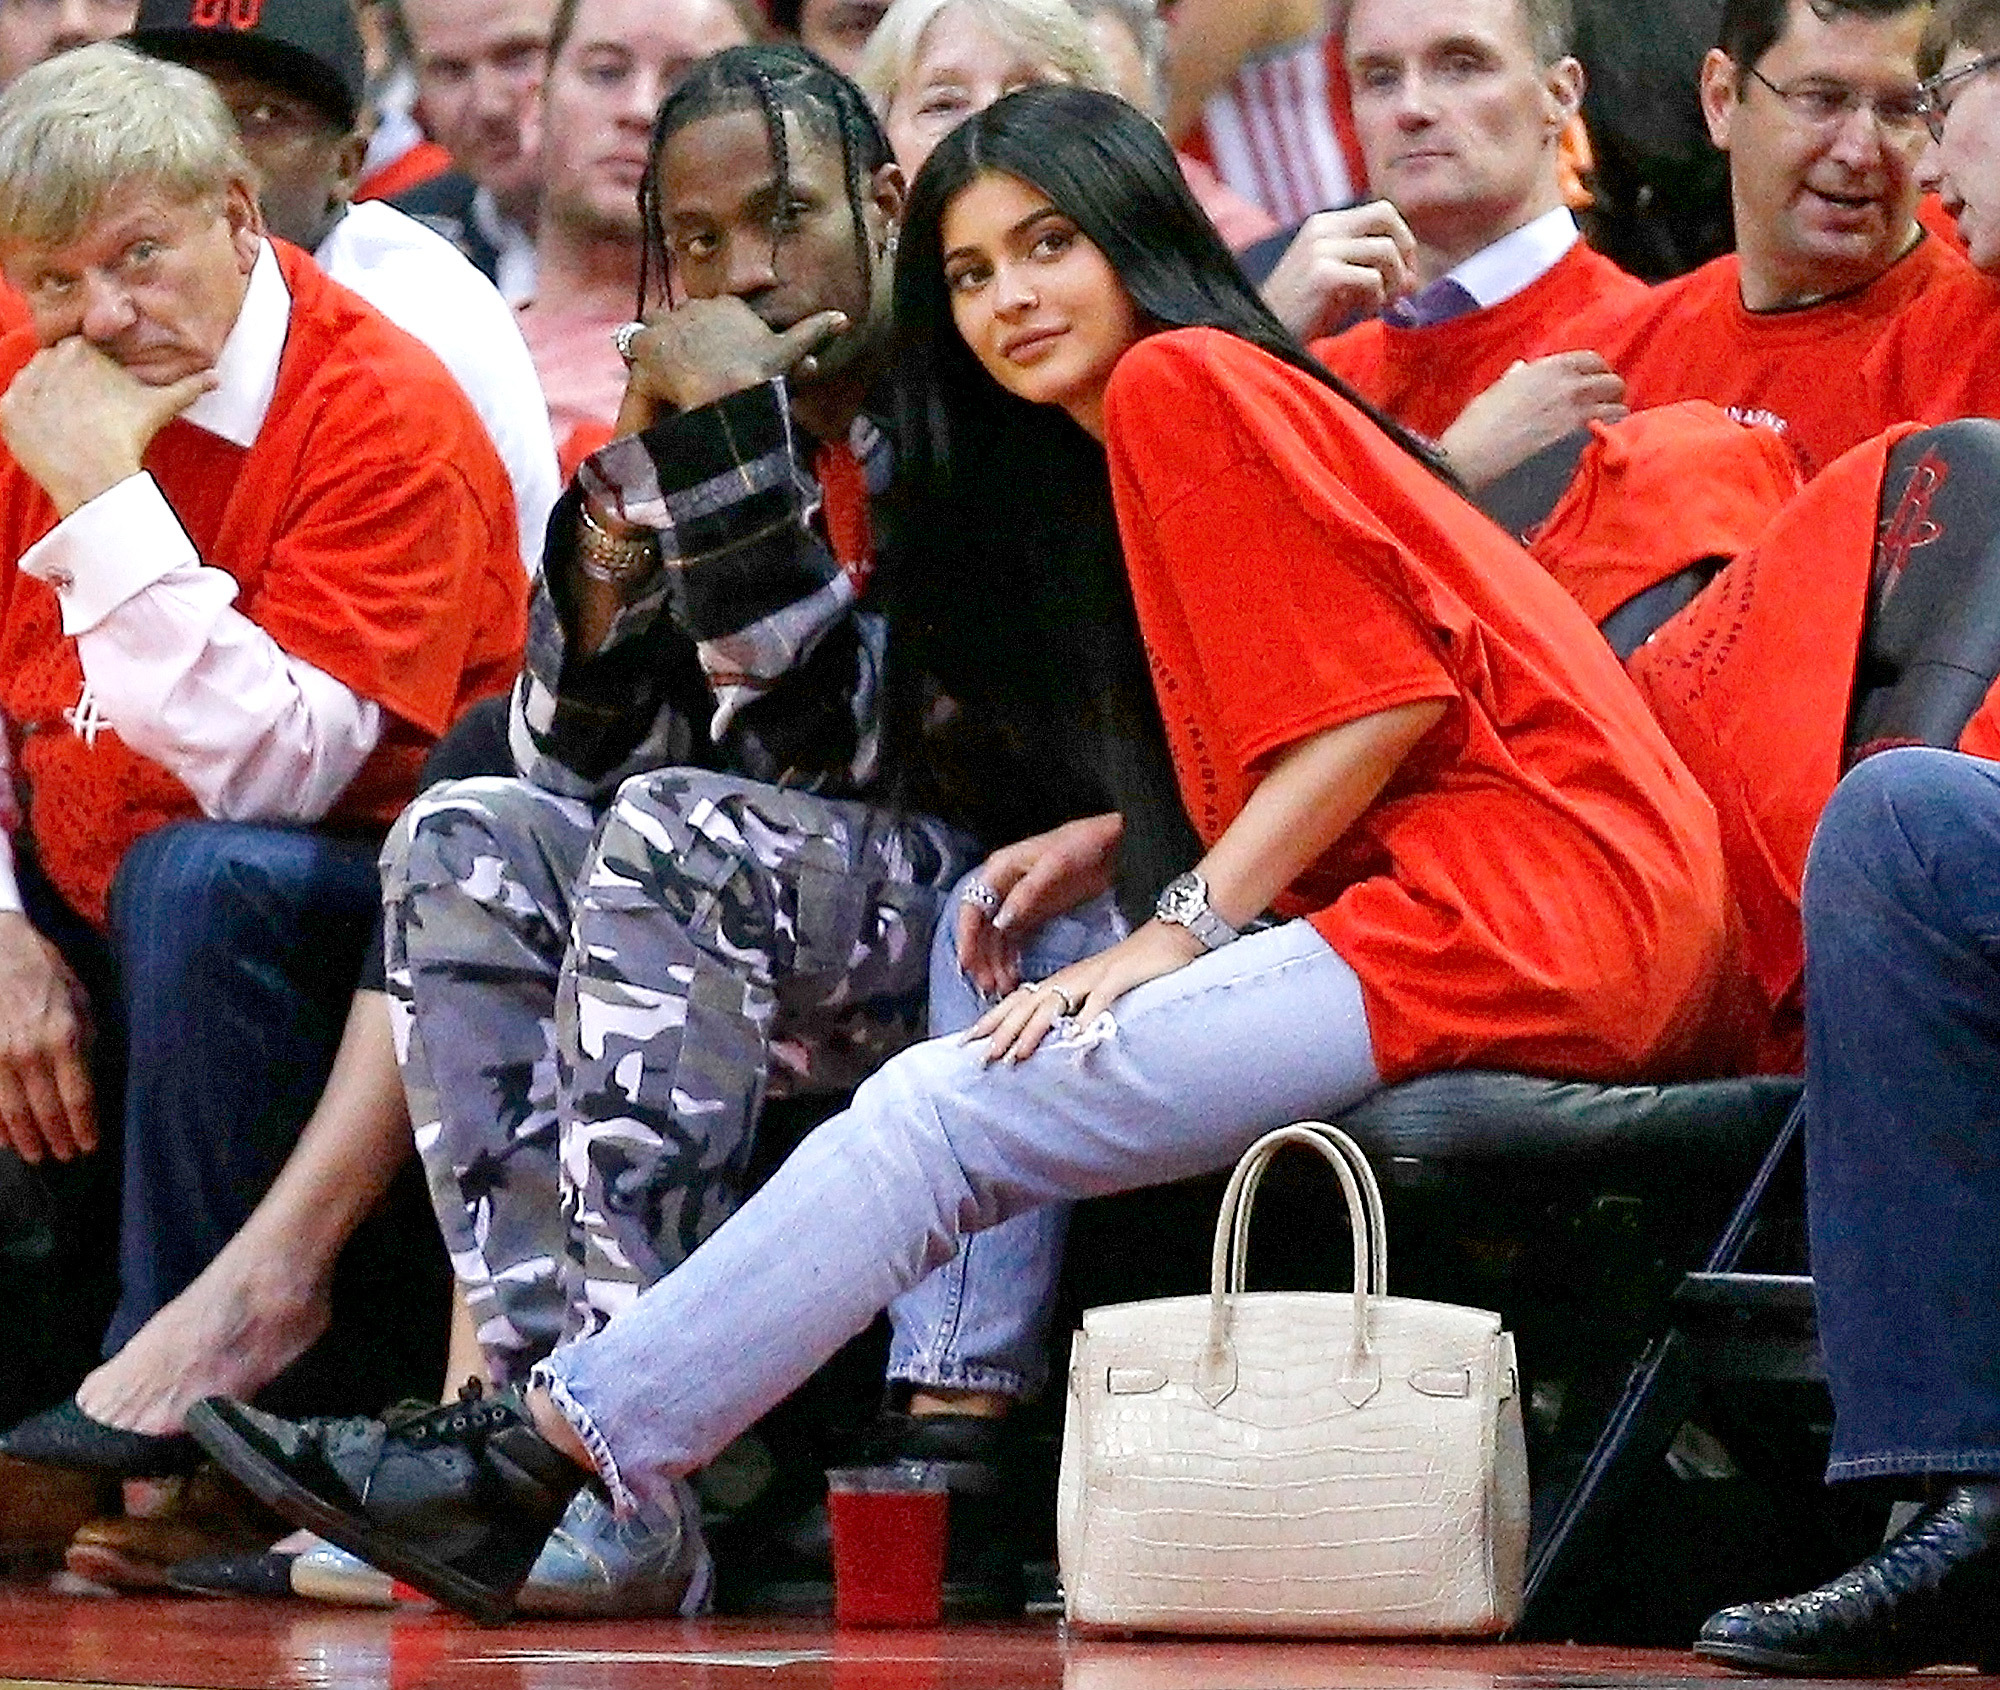 kylie jenner is dumping travis scott revealed source close to jenner family